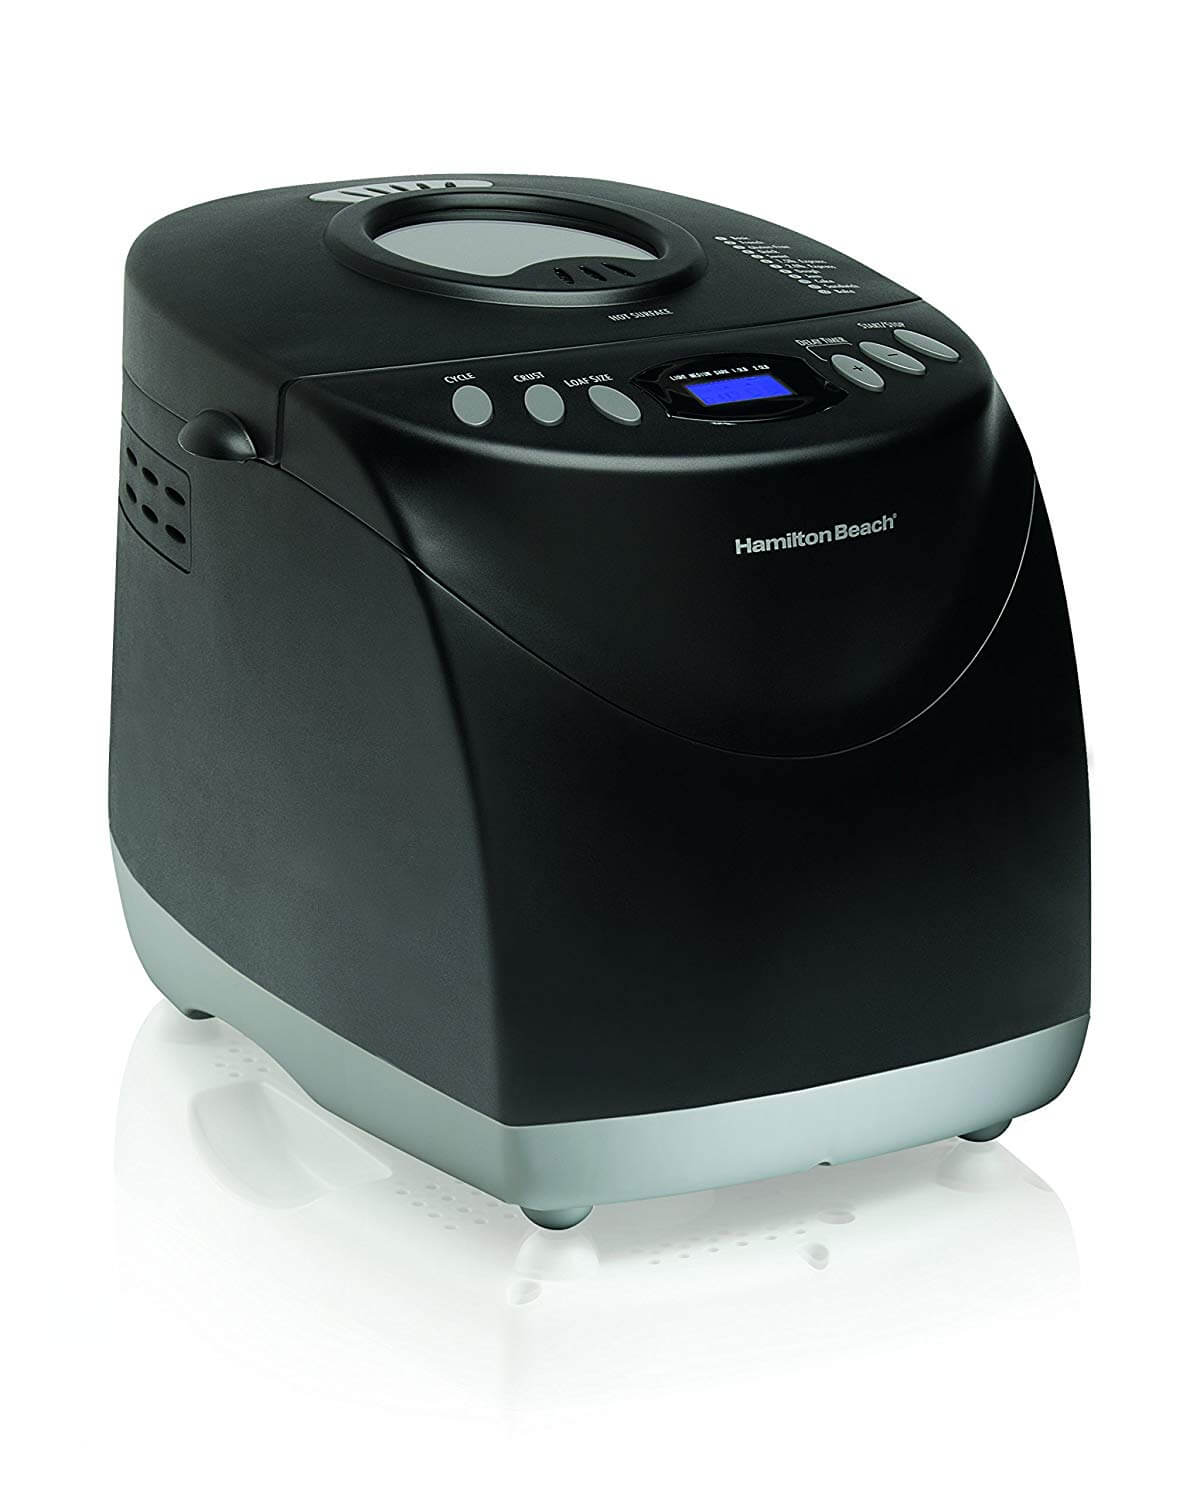 Hamilton Beach (29882C) HomeBaker 2 Lb. Bread Maker Machine